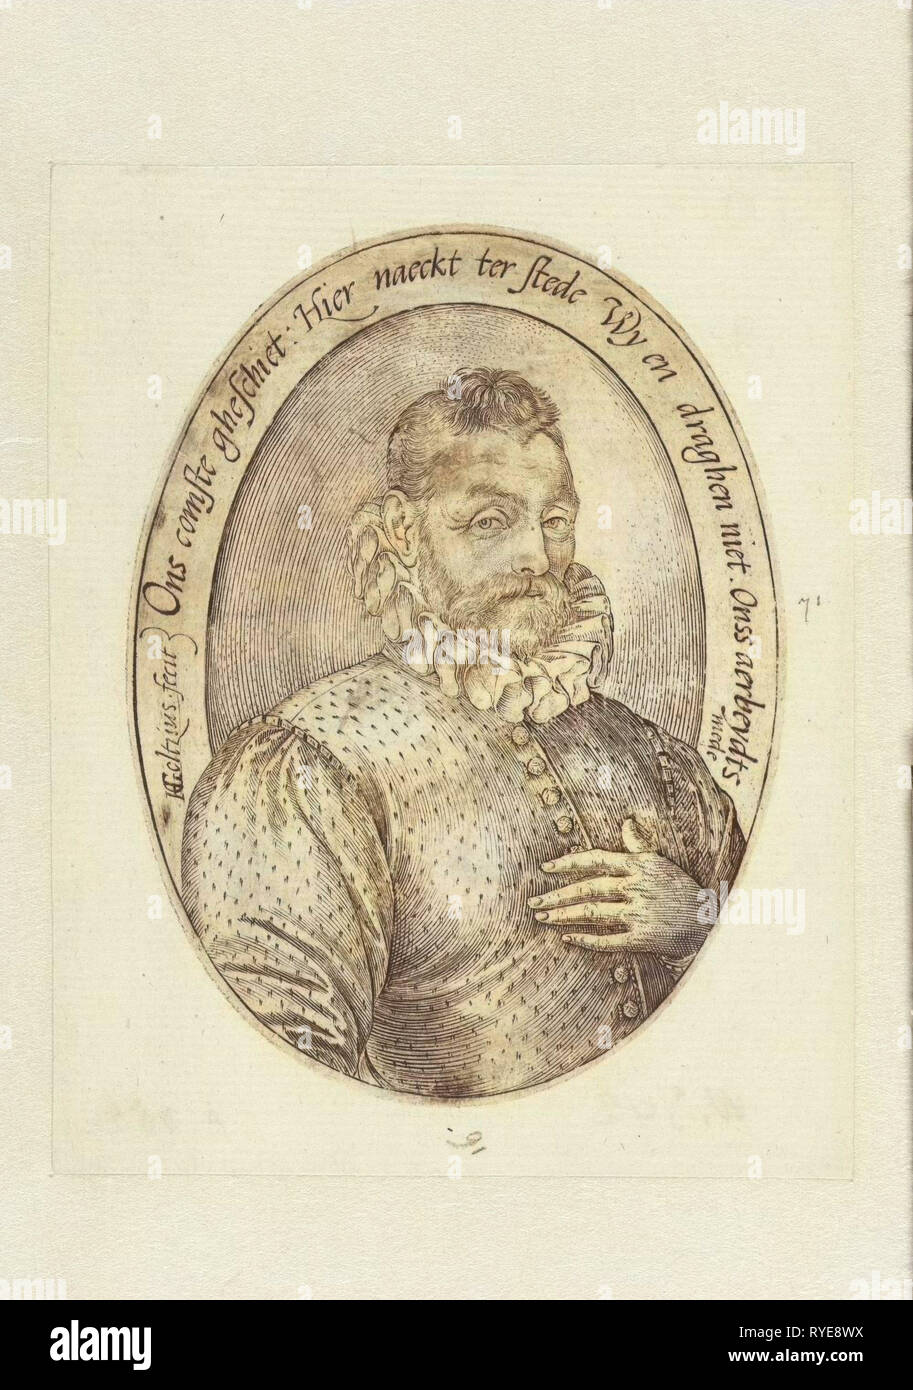 Oval man portrait at Half length, the left hand on the chest, with pleated collar and buttoned his jacket on the chest. inscription in Dutch. Counterpart of similar portrait of a woman, print maker: Hendrick Goltzius (mentioned on object), Dating 1581 - 1585 - Stock Image